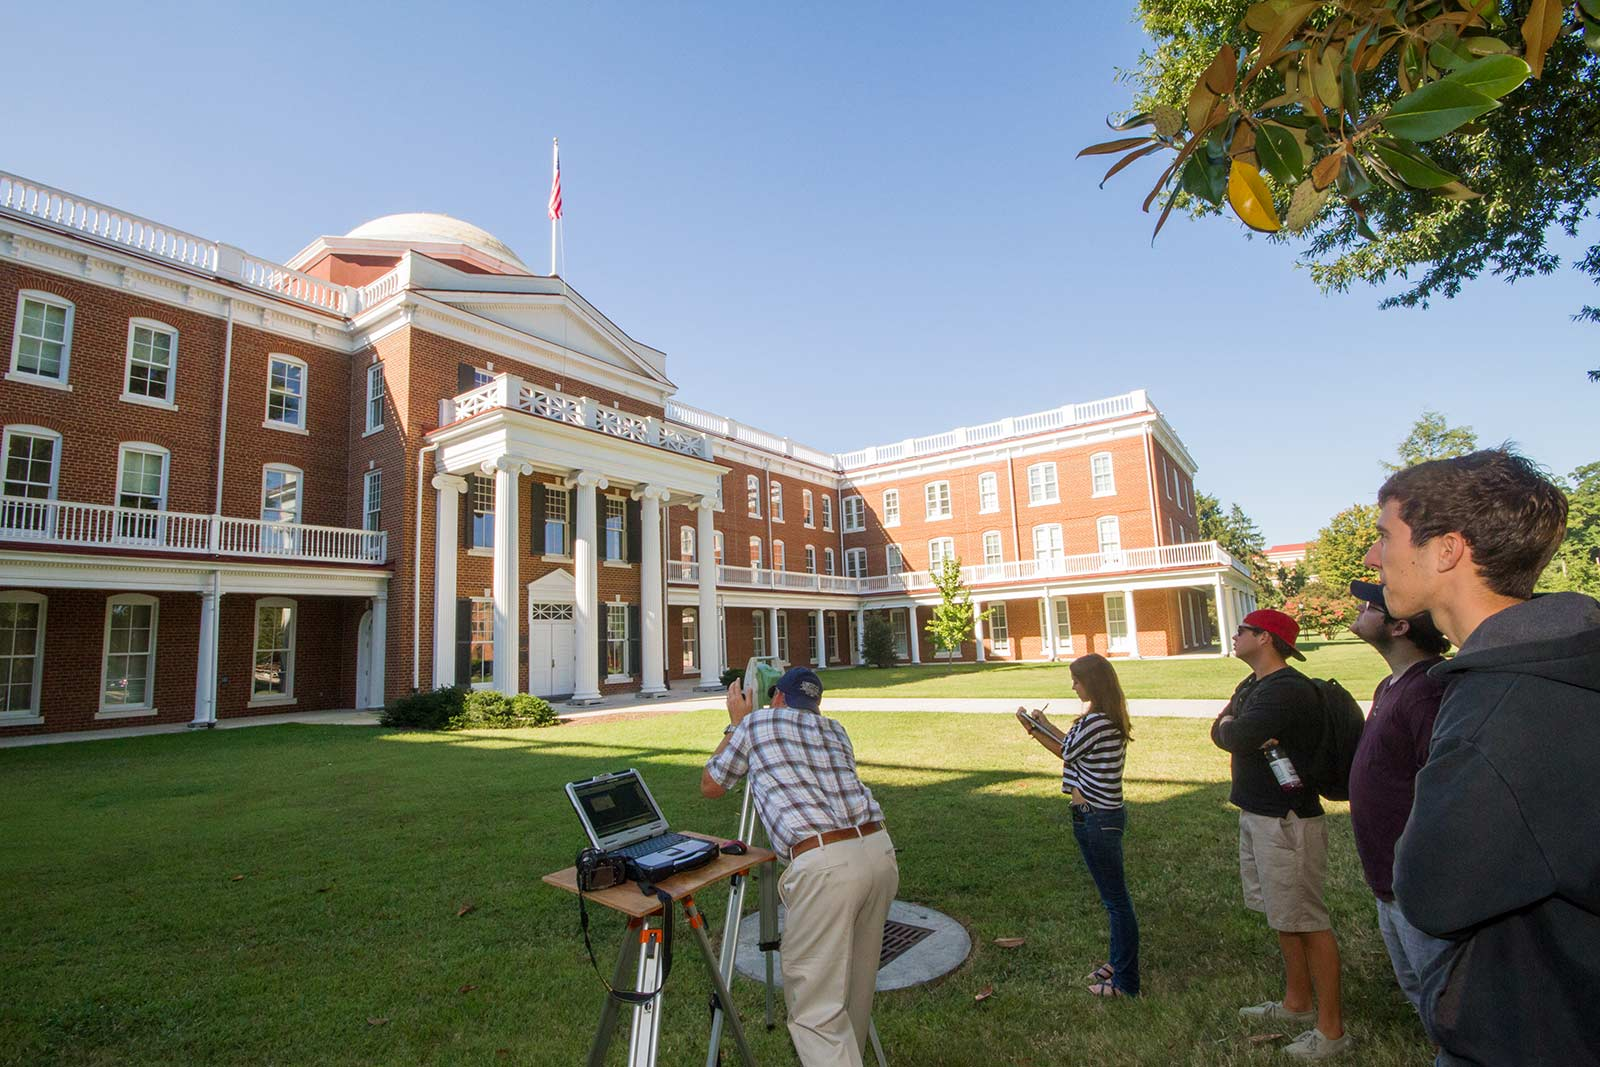 Ruffner Hall is the heart of Longwood. Under its gleaming gold Rotunda sits another symbol of campus, our patron hero Joan of Arc, who has come to symbolize the citizen leadership we all strive for.